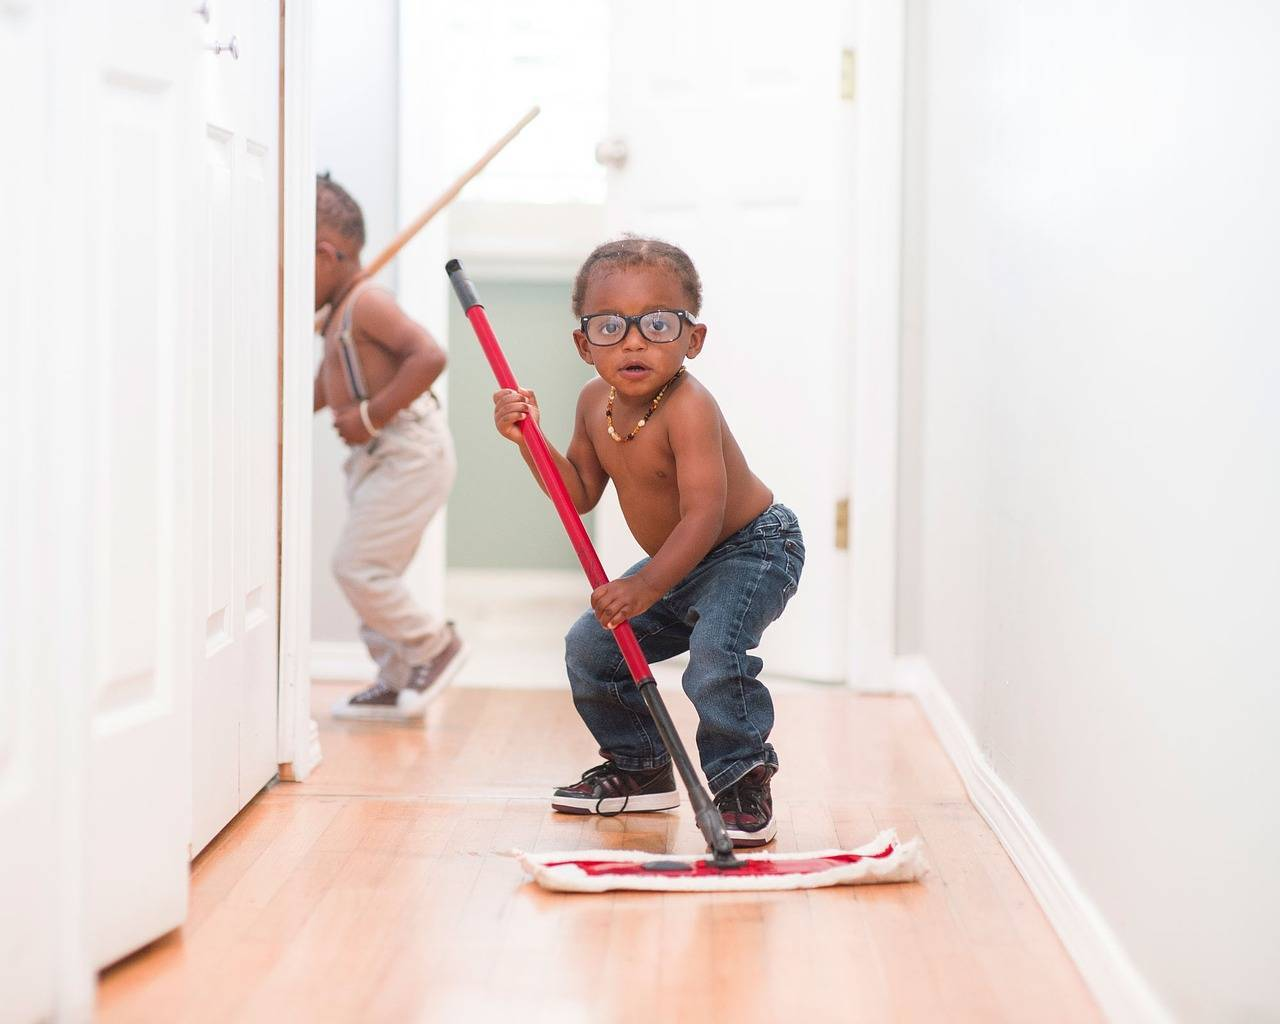 Encouraging kids to do household chores, good or bad idea?